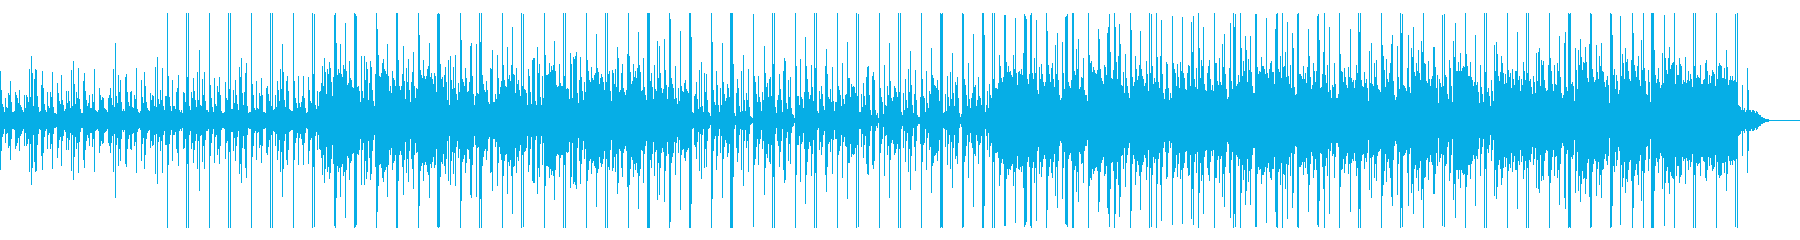 Chilly BGM with an impressive steel drum's reproduced waveform